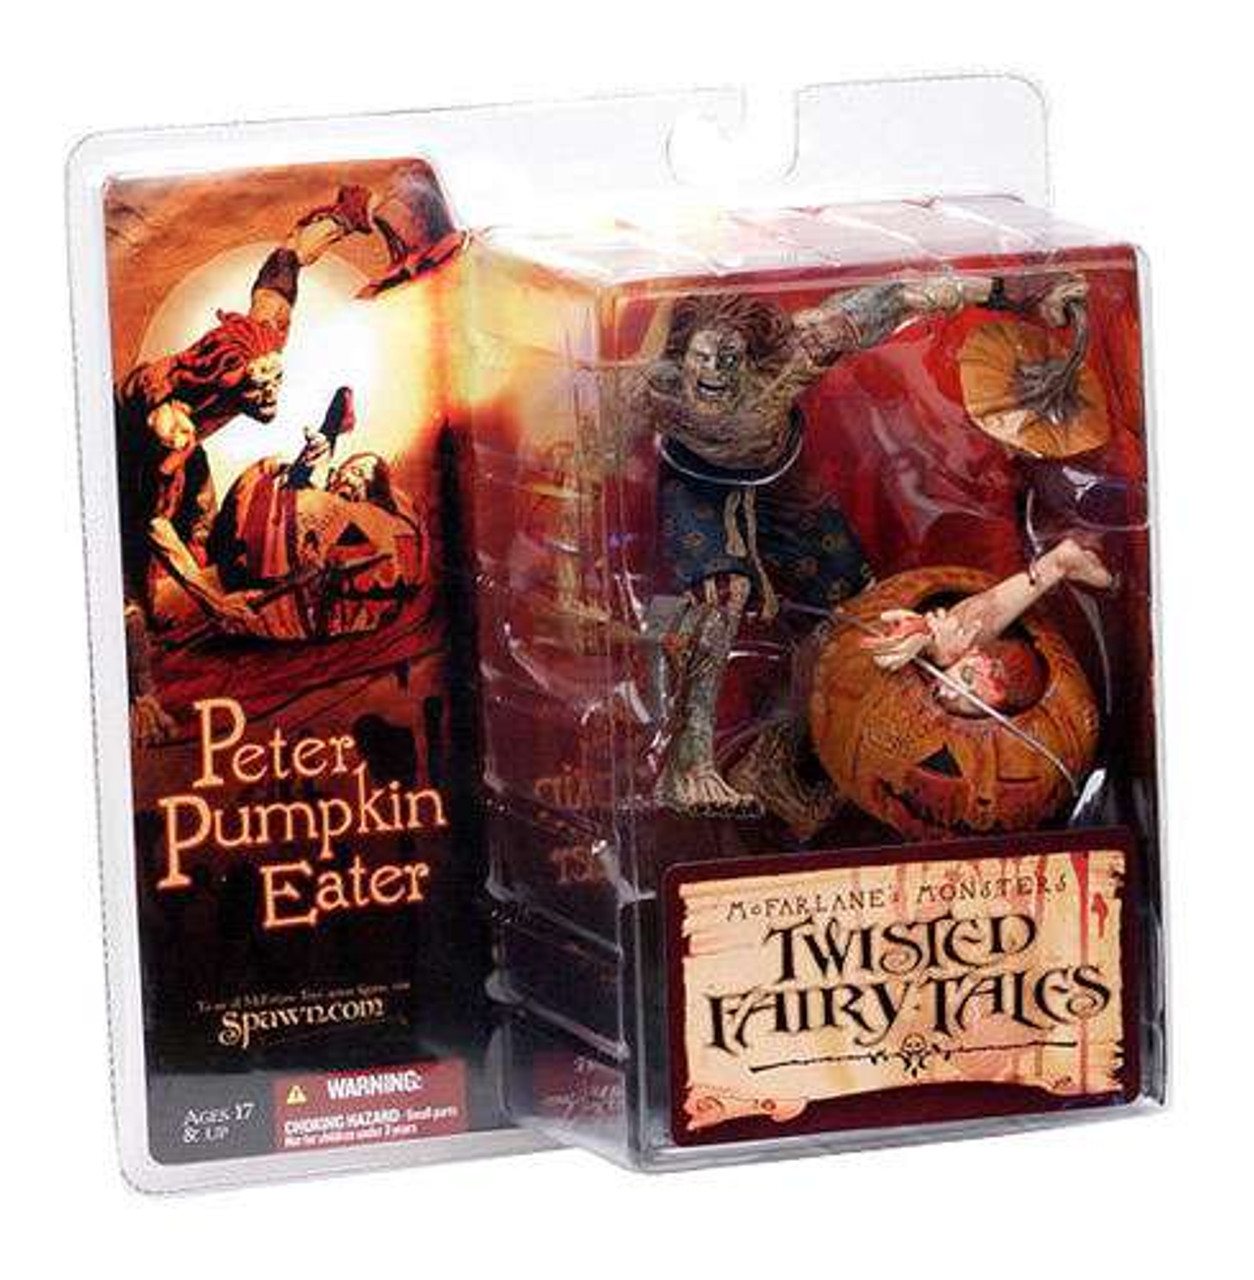 McFarlane Toys McFarlane's Monsters Twisted Fairy Tales Peter Pumpkin Eater Action Figure